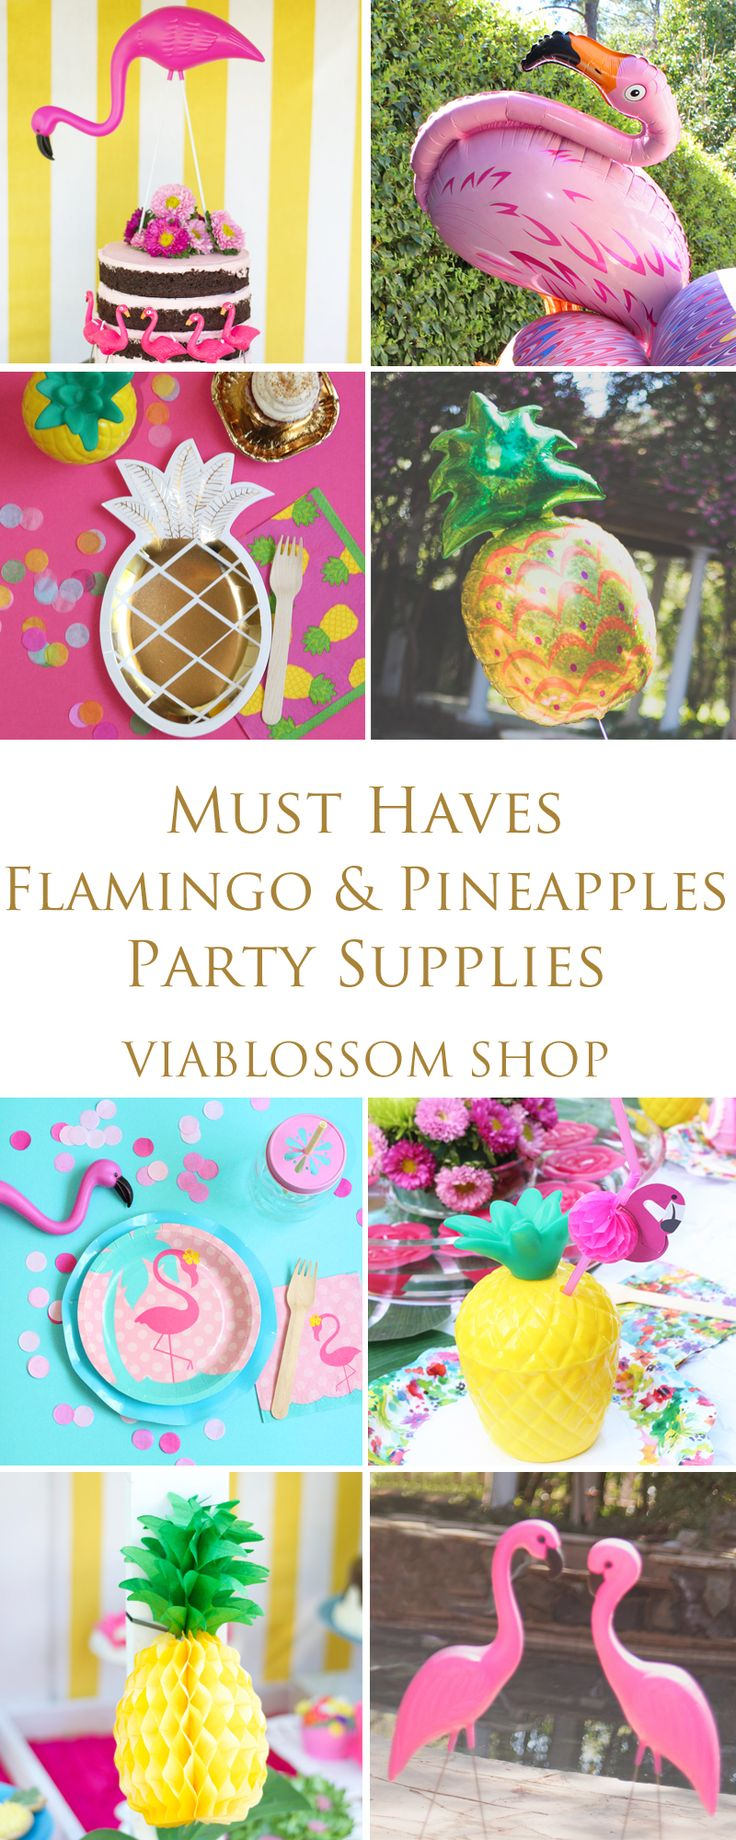 Must Haves Flamingo and Pineapples Party Supplies! Everything you'll need for your Flamingo Party! All kinds of Pineapple decorations and Flamingo Party Supplies!